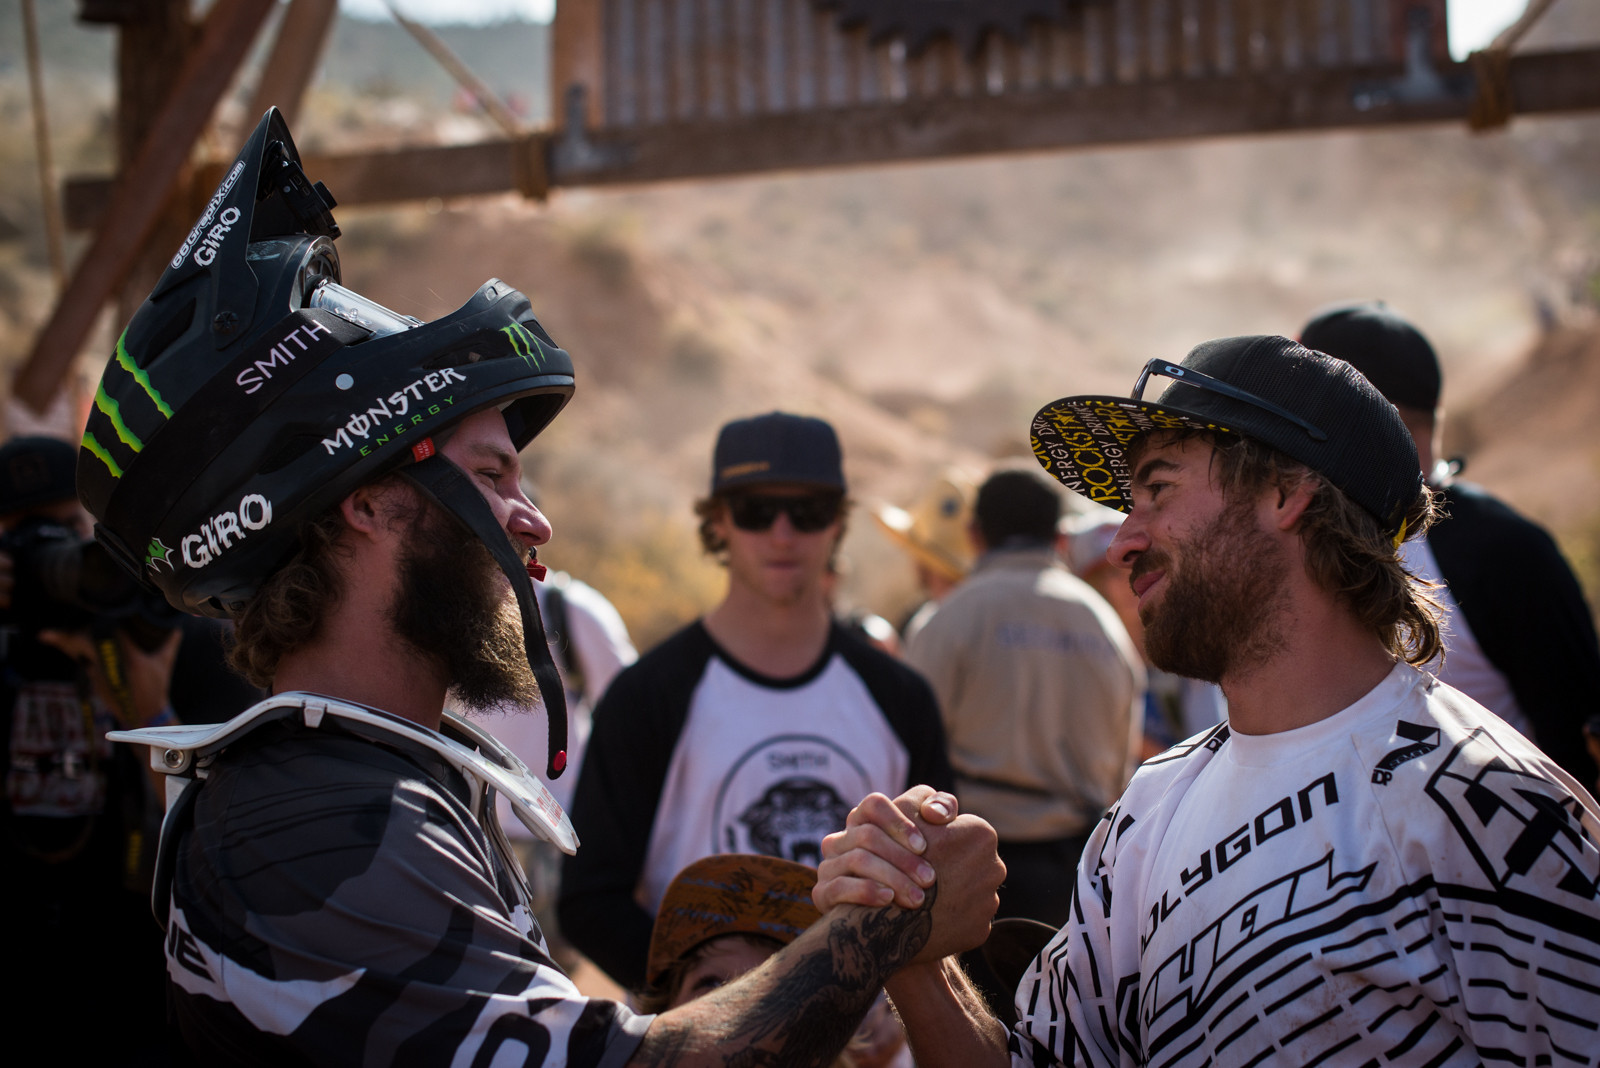 Aggy and Sorge - 2015 Red Bull Rampage Finals - Mountain Biking Pictures - Vital MTB